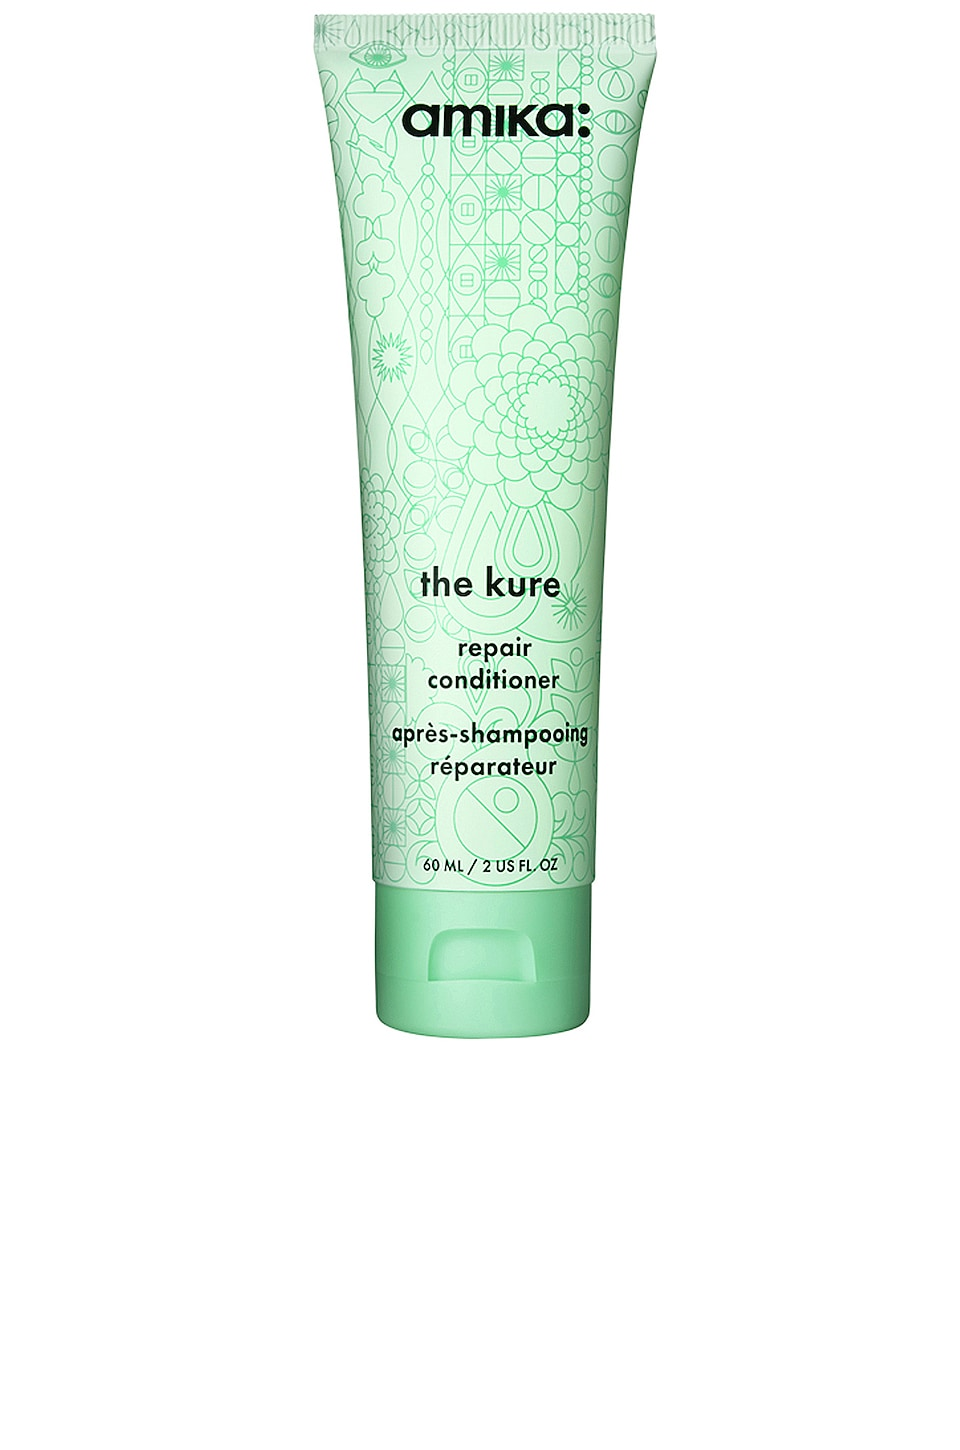 Travel THE KURE Repair Conditioner